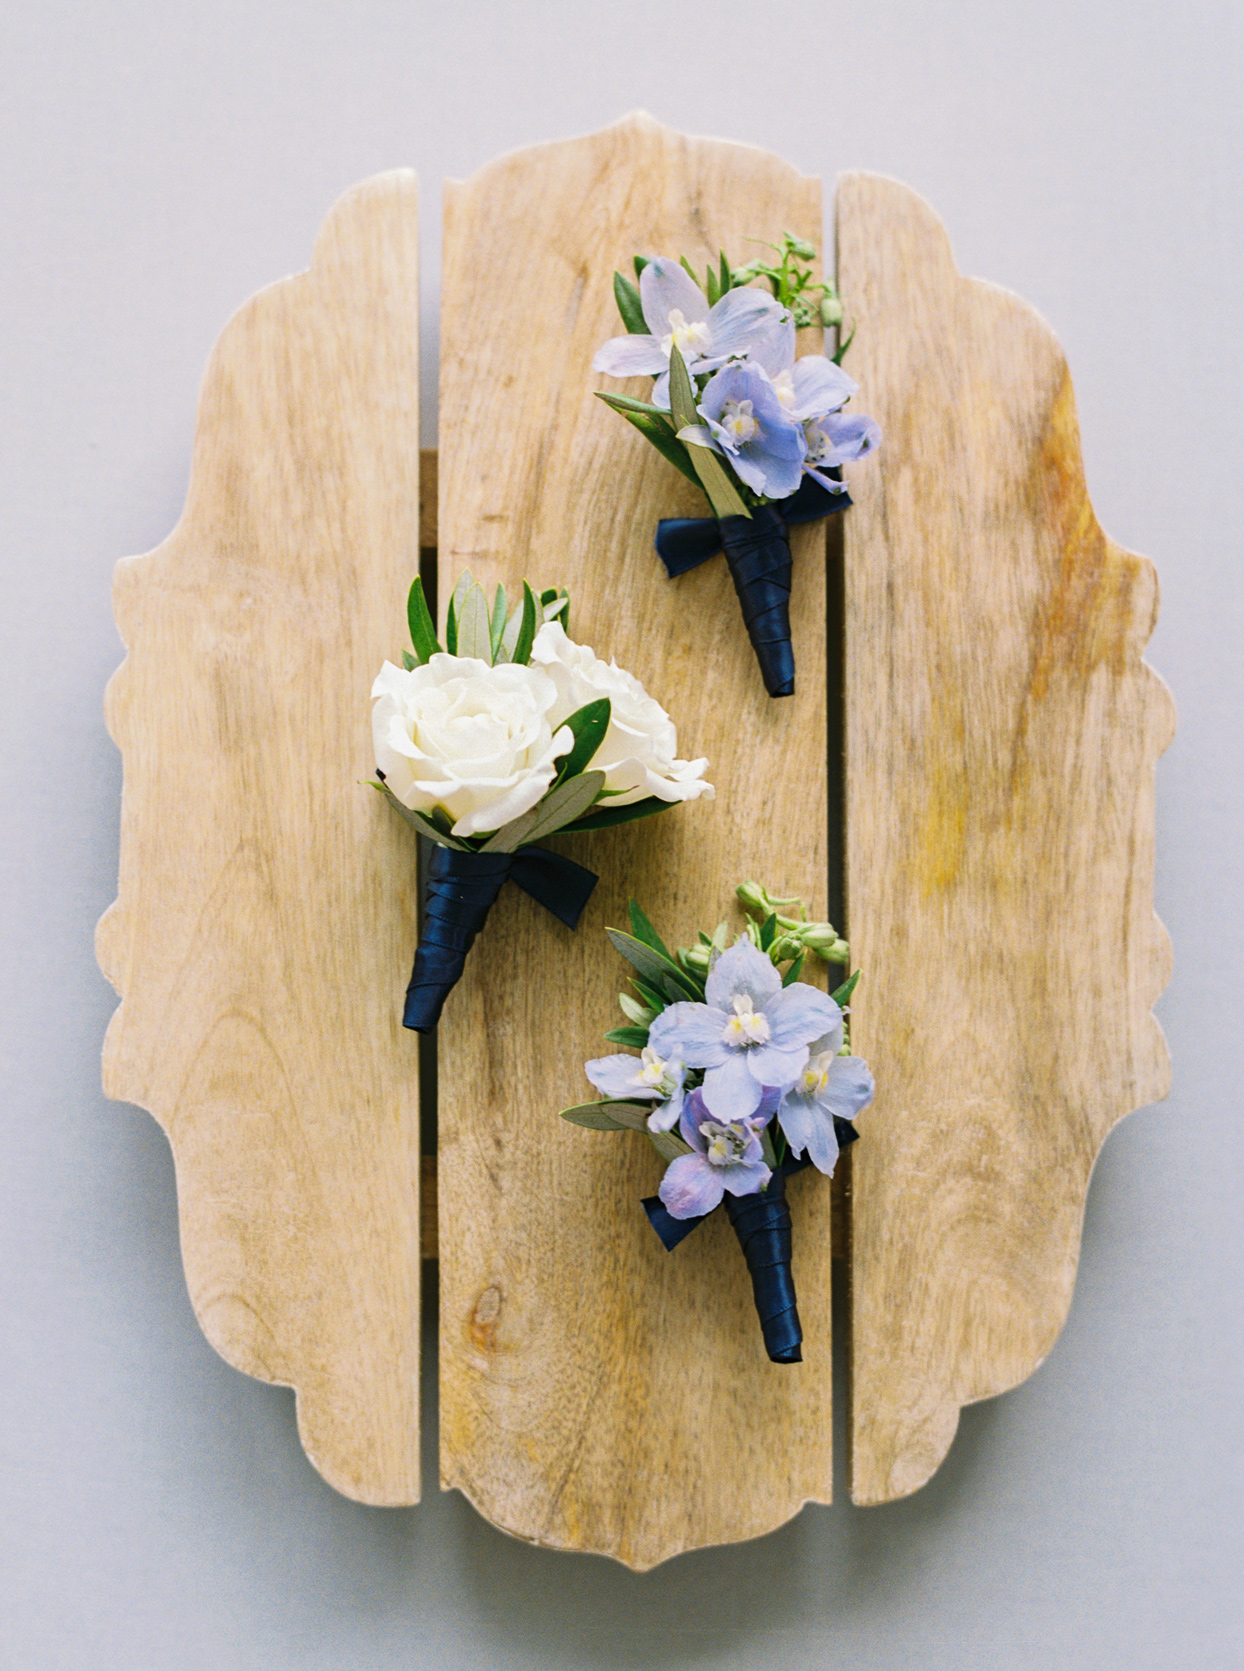 blue, white, and green floral boutonnieres on wooden display